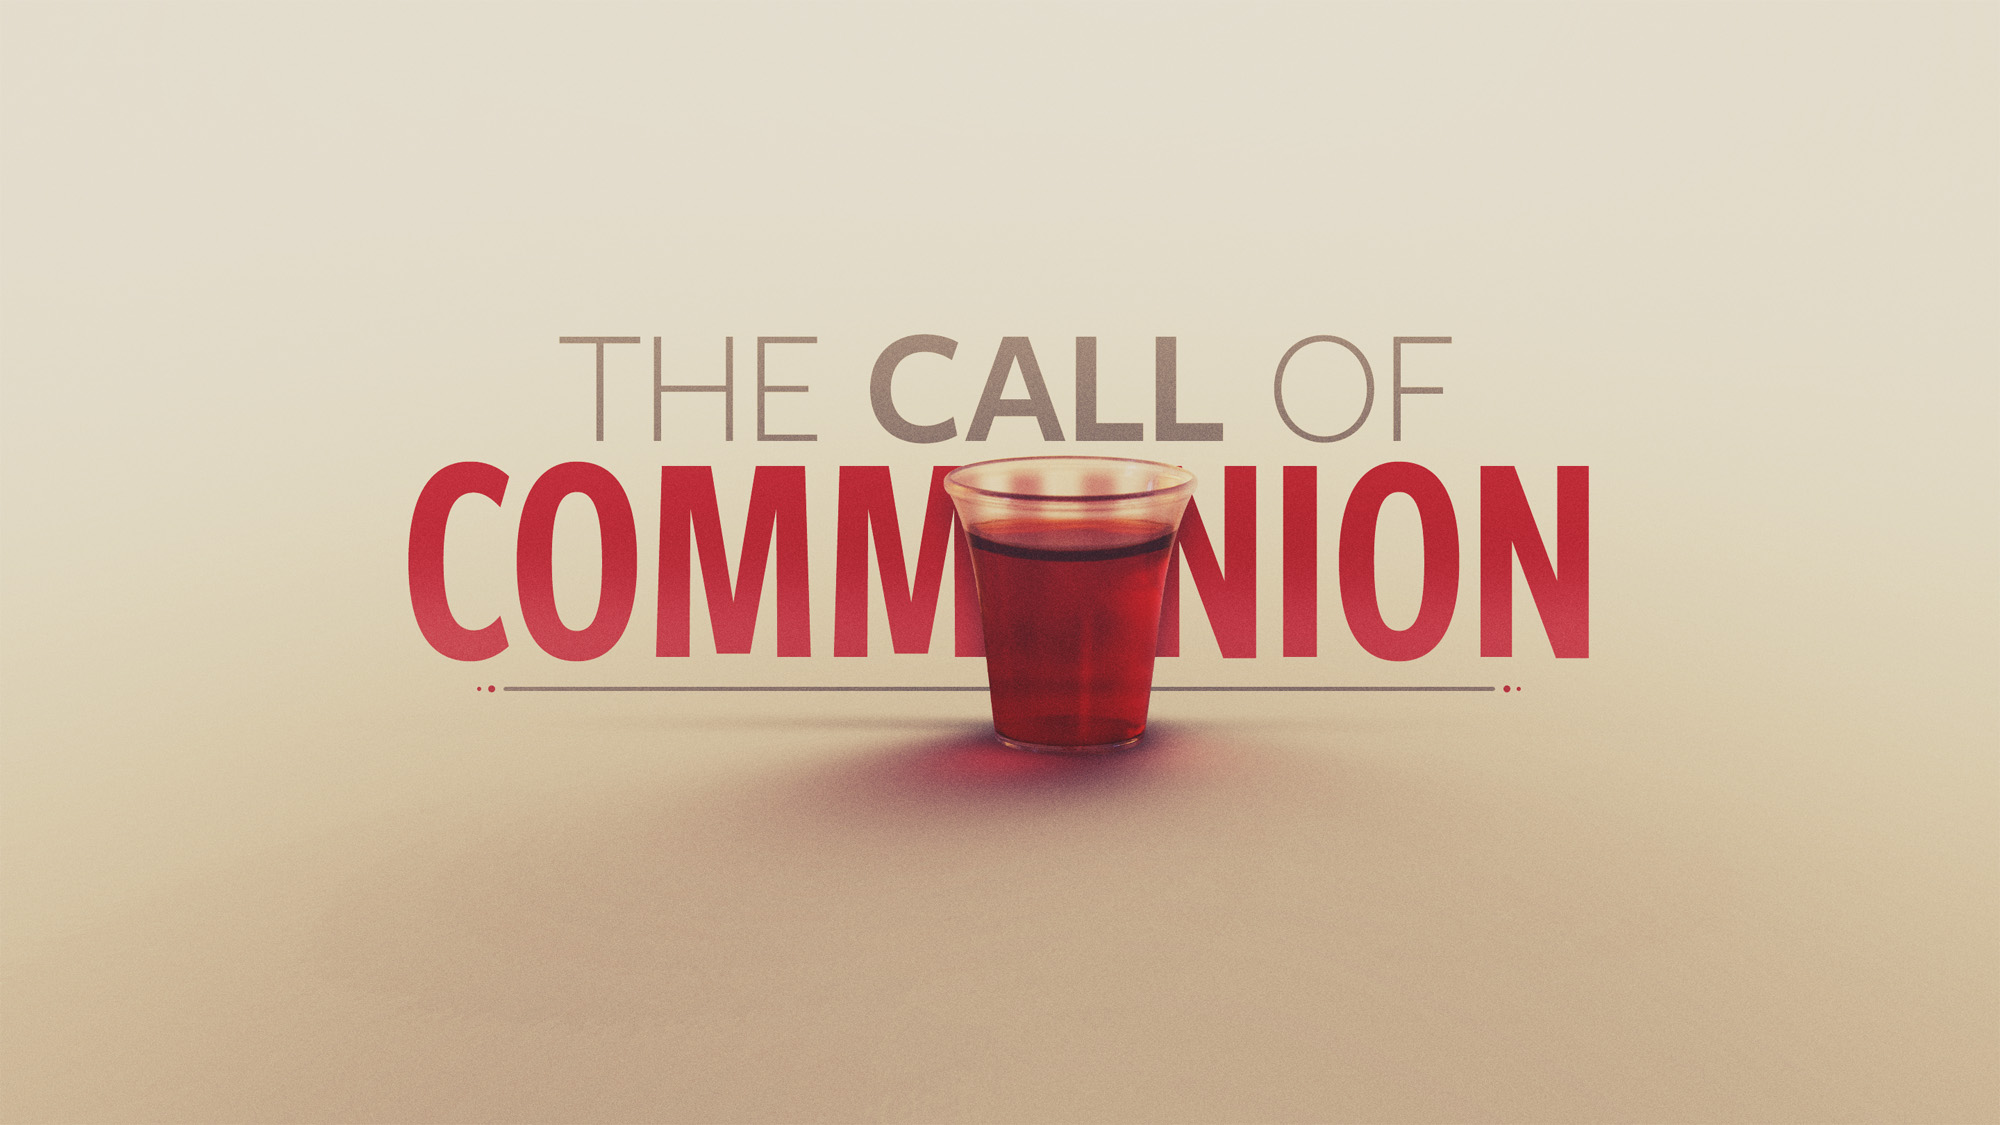 the_call_of_communion-title-2-still-16x9.jpg